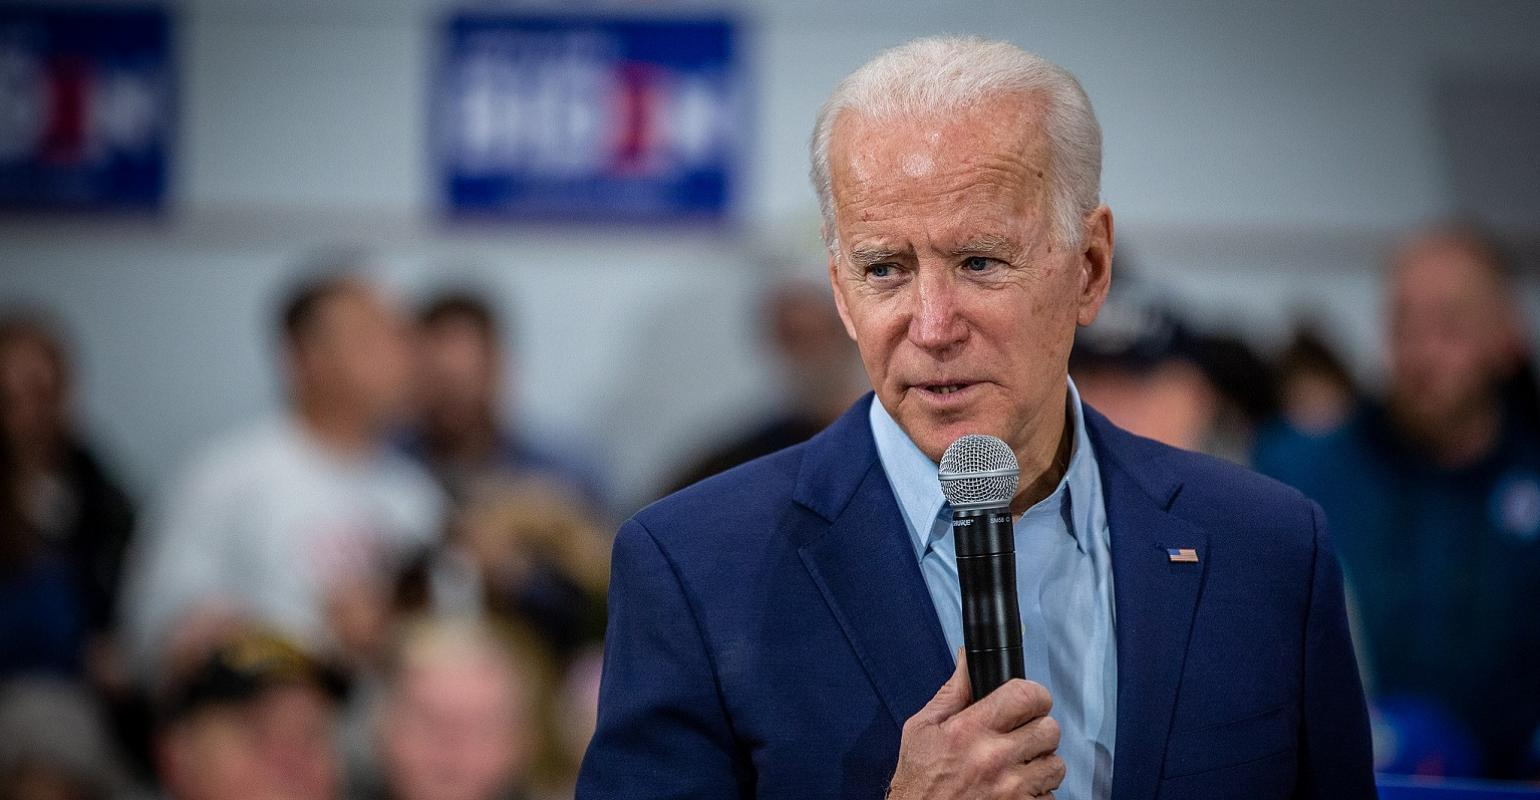 Joe_Biden_at_McKinley_Elementary_School_wikipedia49331527821